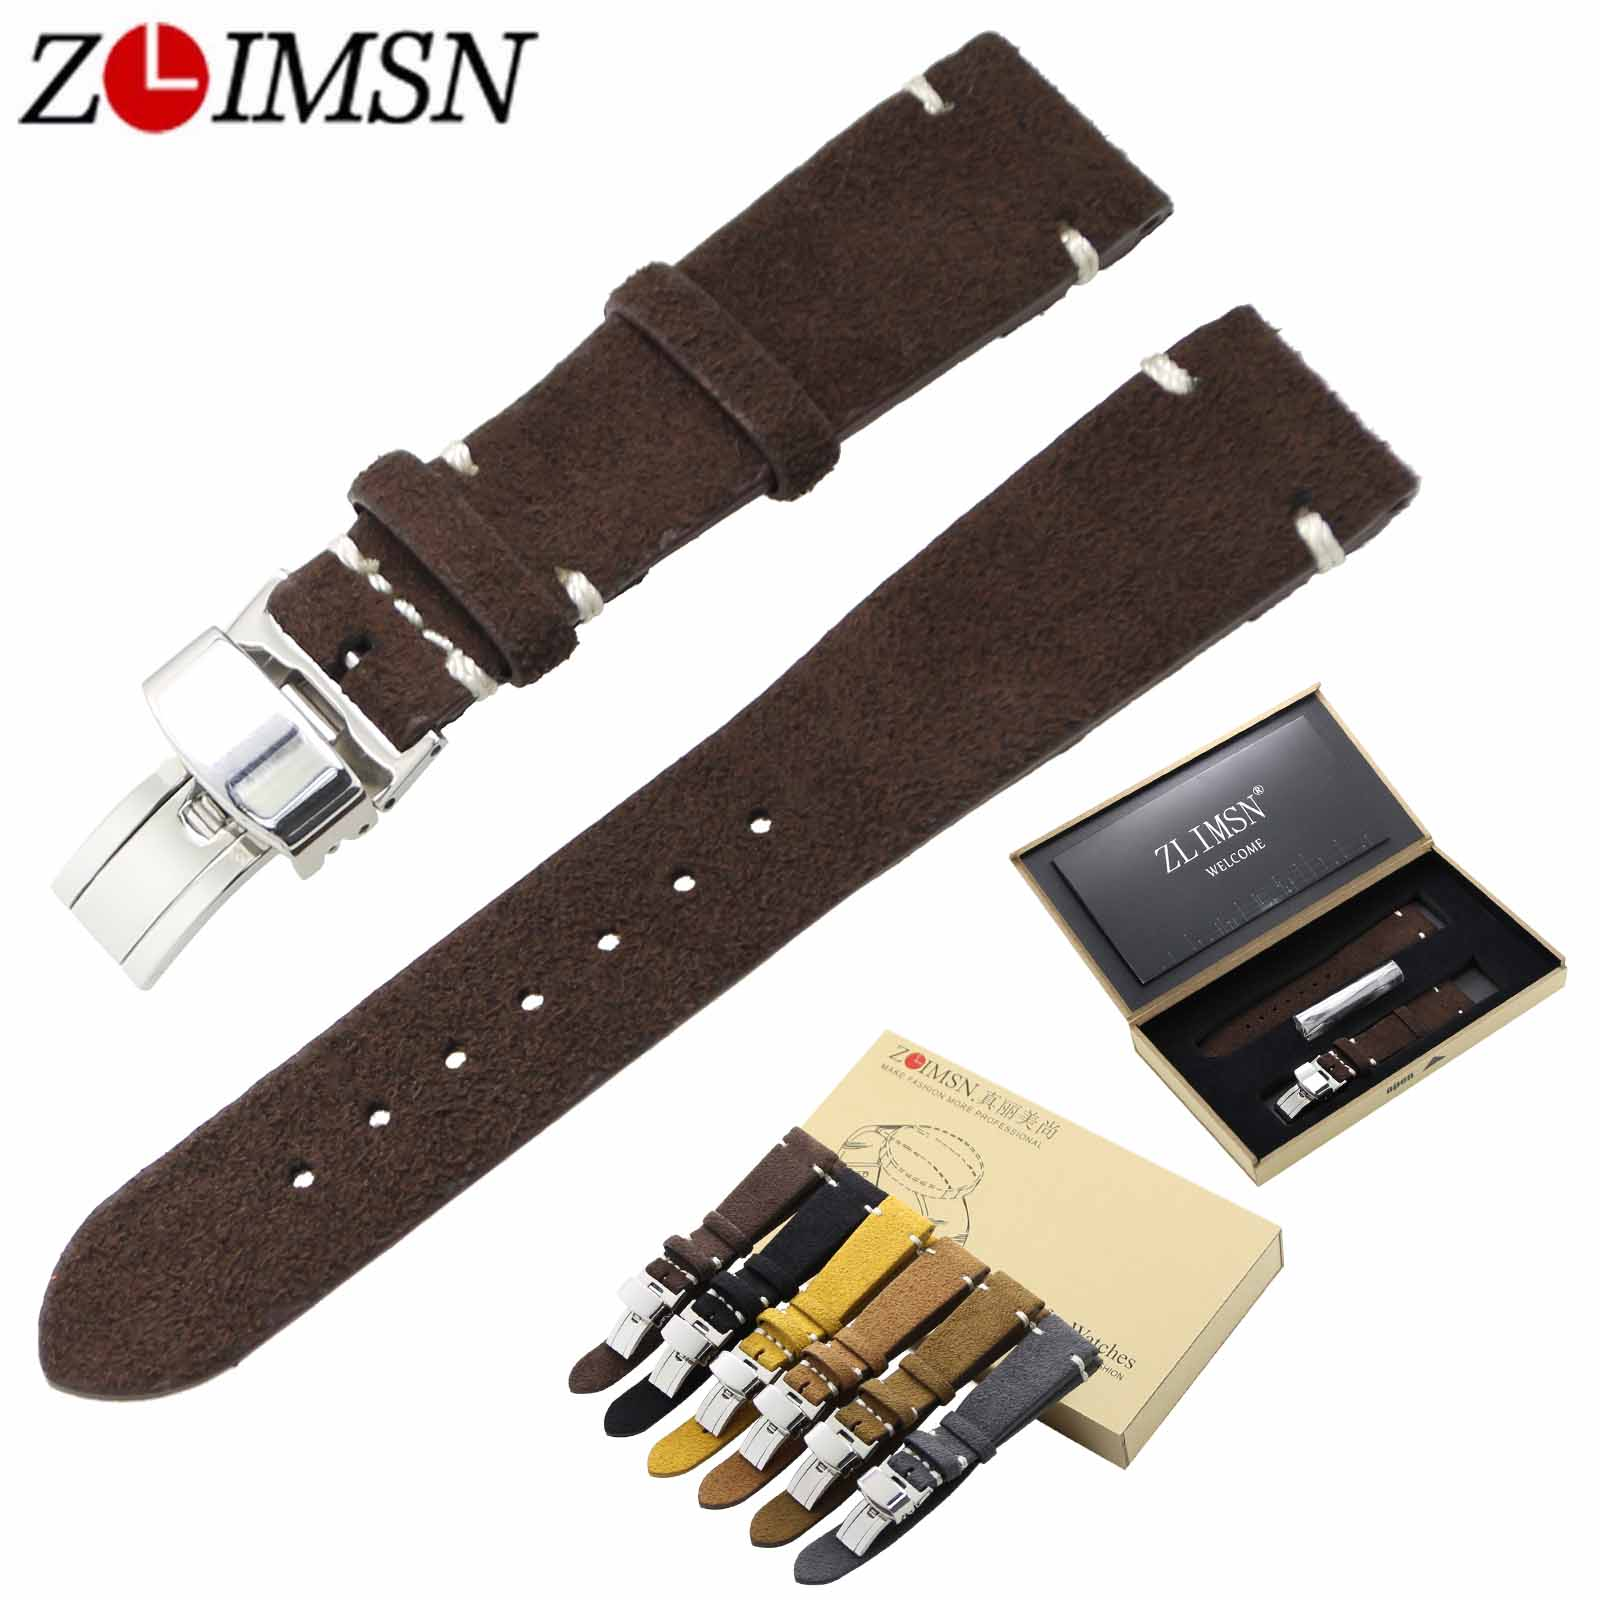 ZLIMSN 20mm Genuine Leather Watch Bands Replacement Grey Brown Black Yellow Watchband Silver Polished Stainless Steel Buckles цена и фото